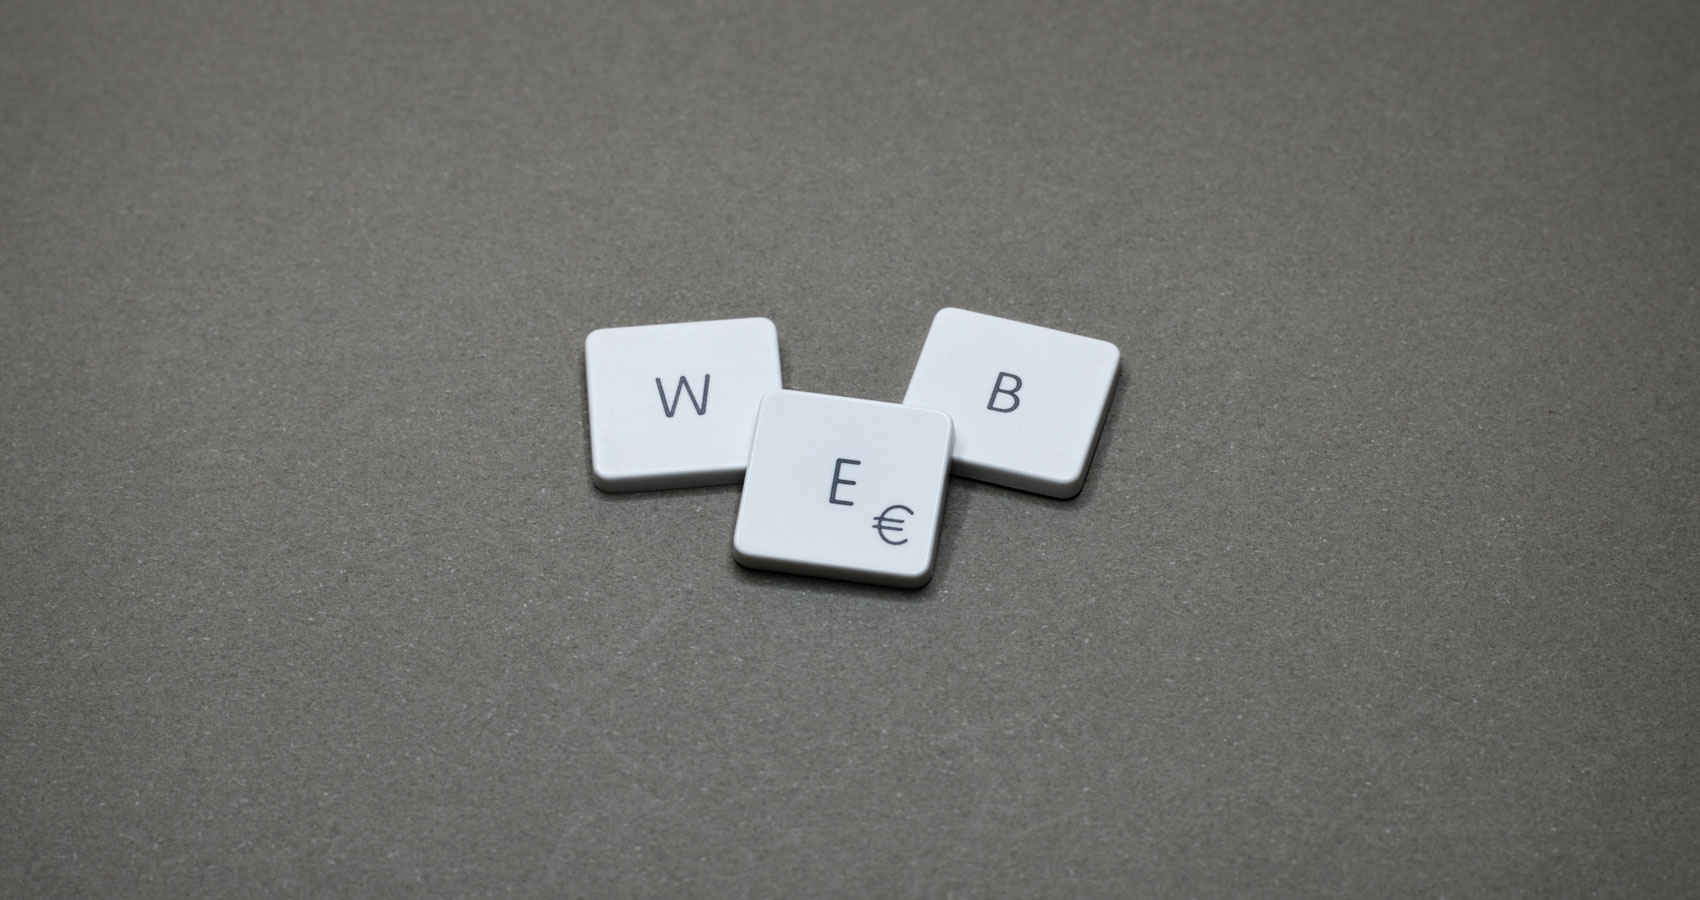 Web, poetry written by Eliza Segiet at Spillwords.com